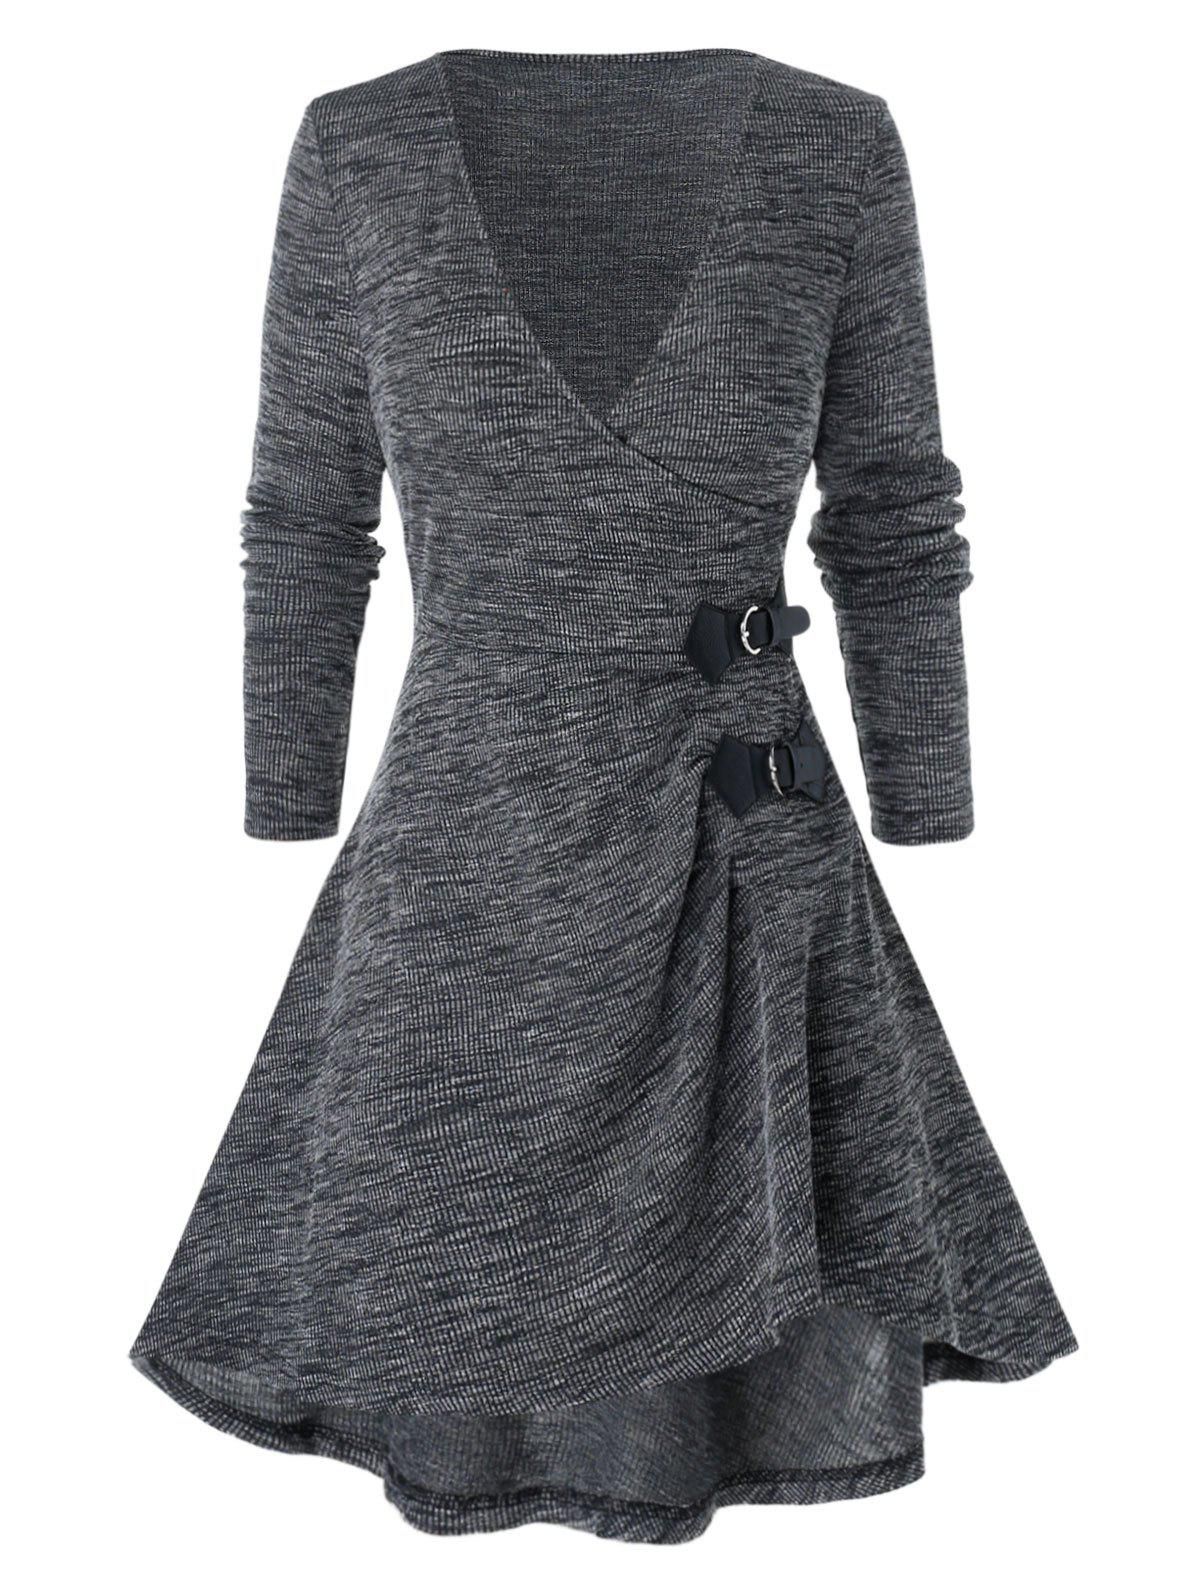 Plus Size Marled Plunging Neck High Low Sweater - CLOUDY GRAY L